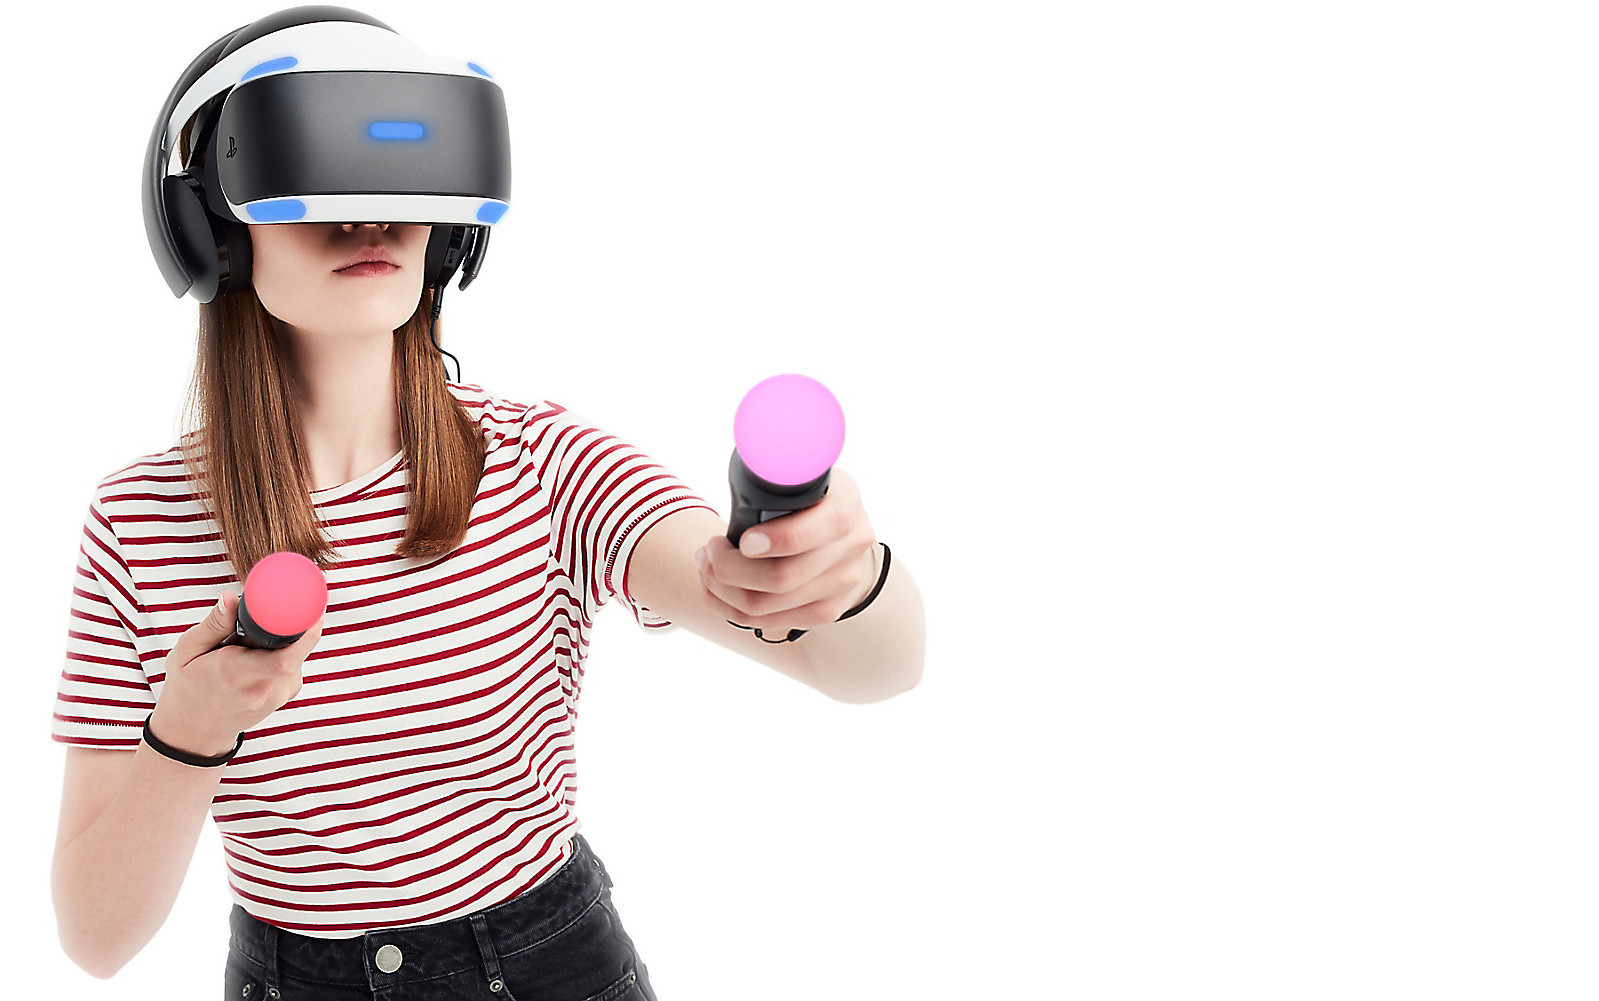 18238506c71 PlayStation VR - Over 200 games and counting. Feel them all ...